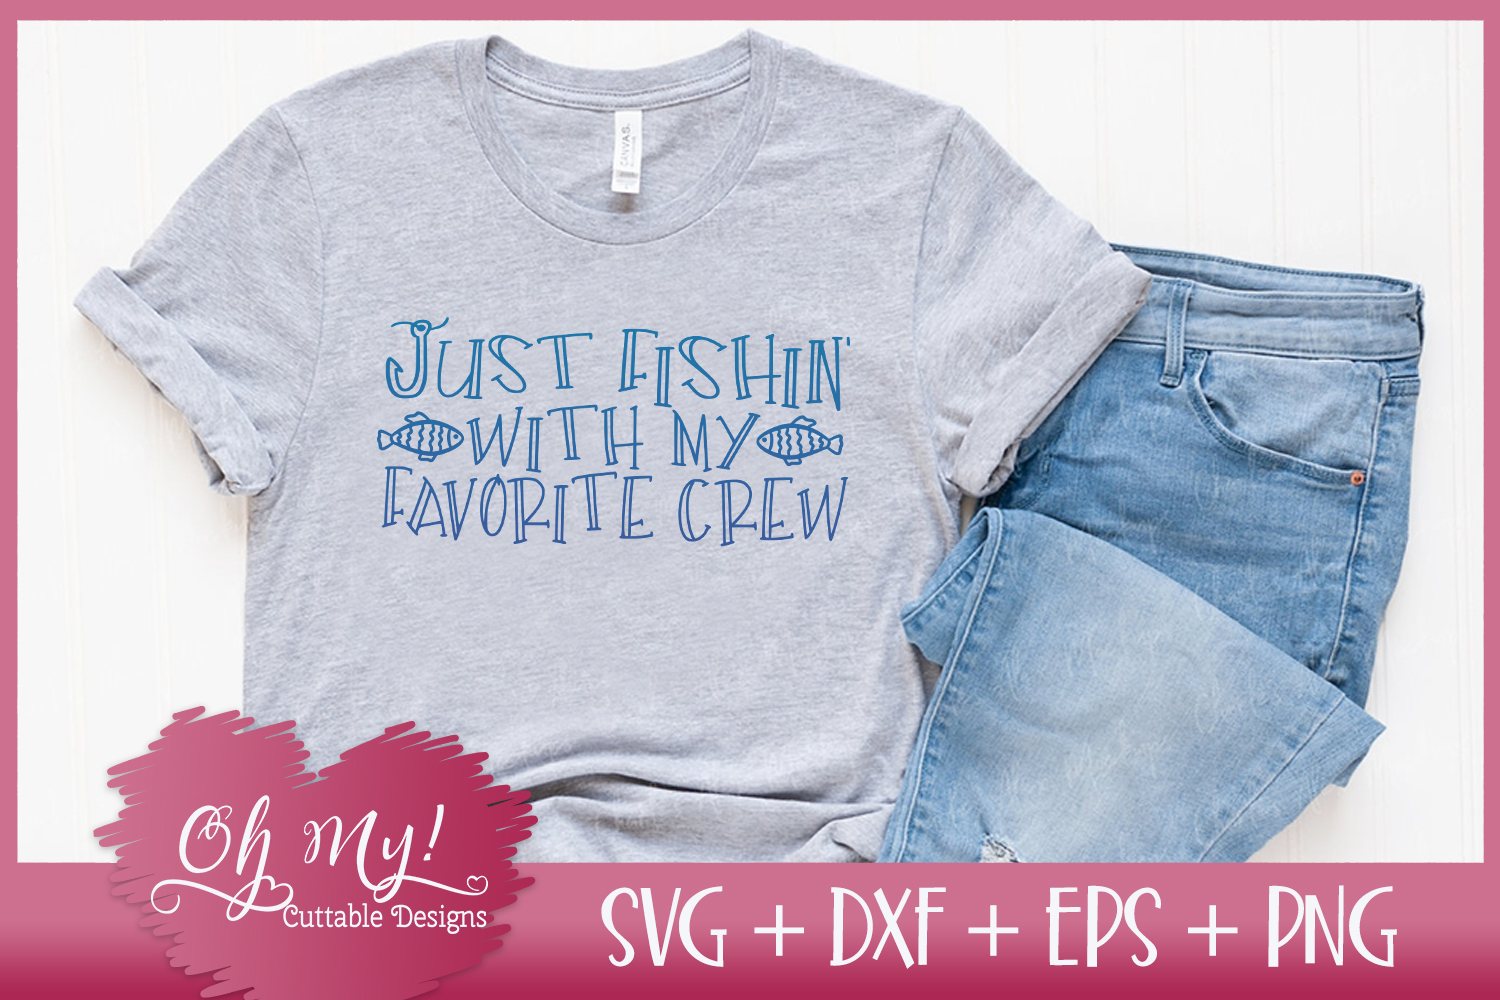 Just Fishin With My Favorite Crew - SVG DXF EPS PNG Cutting example image 1